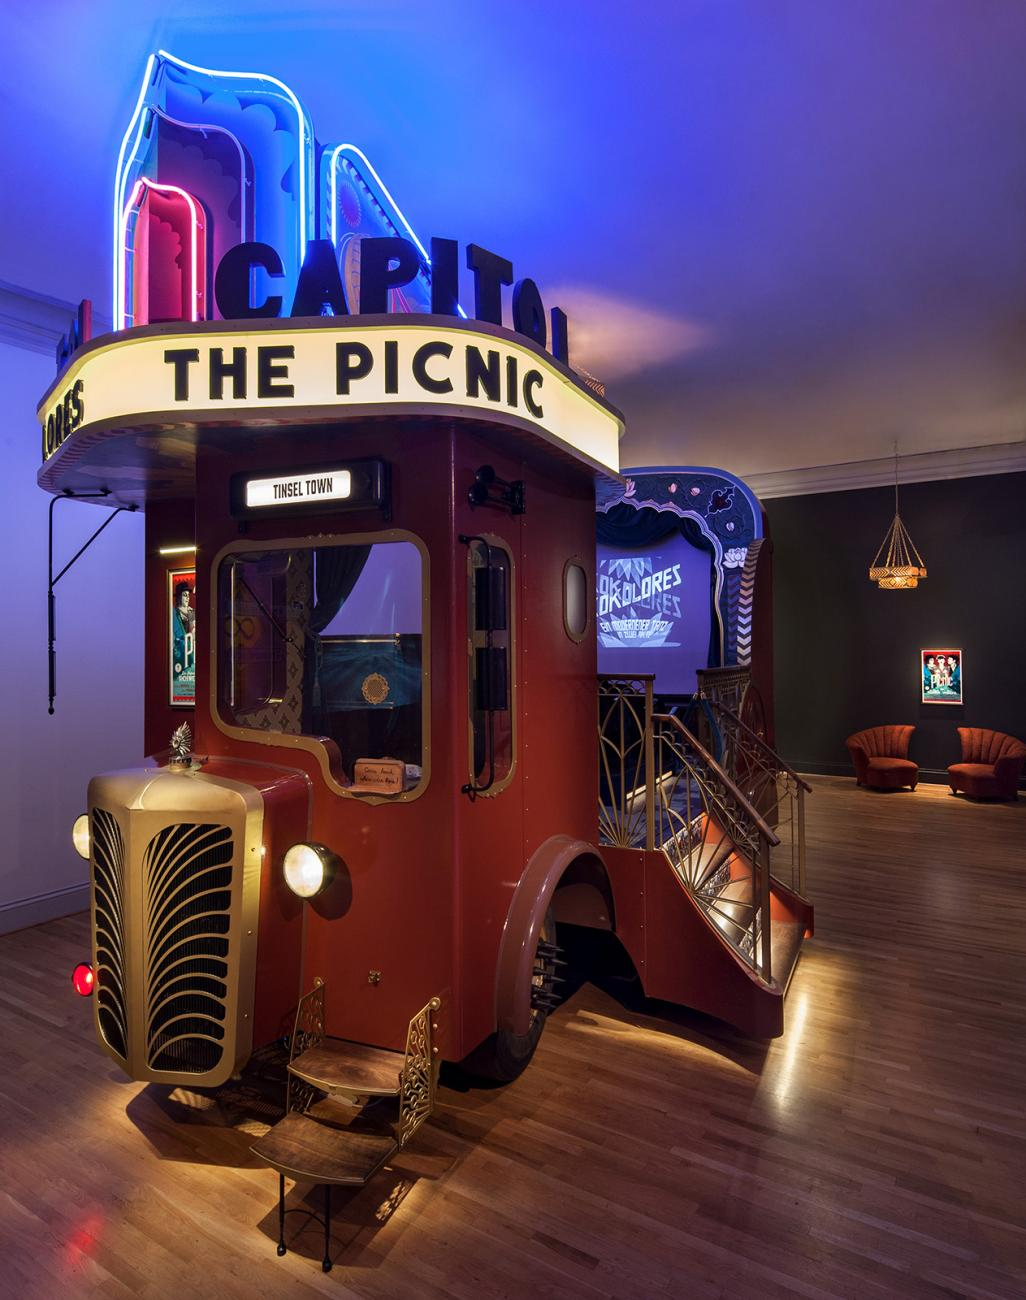 An image of capitol theater, a portable movie theater inside the Renwick Gallery.